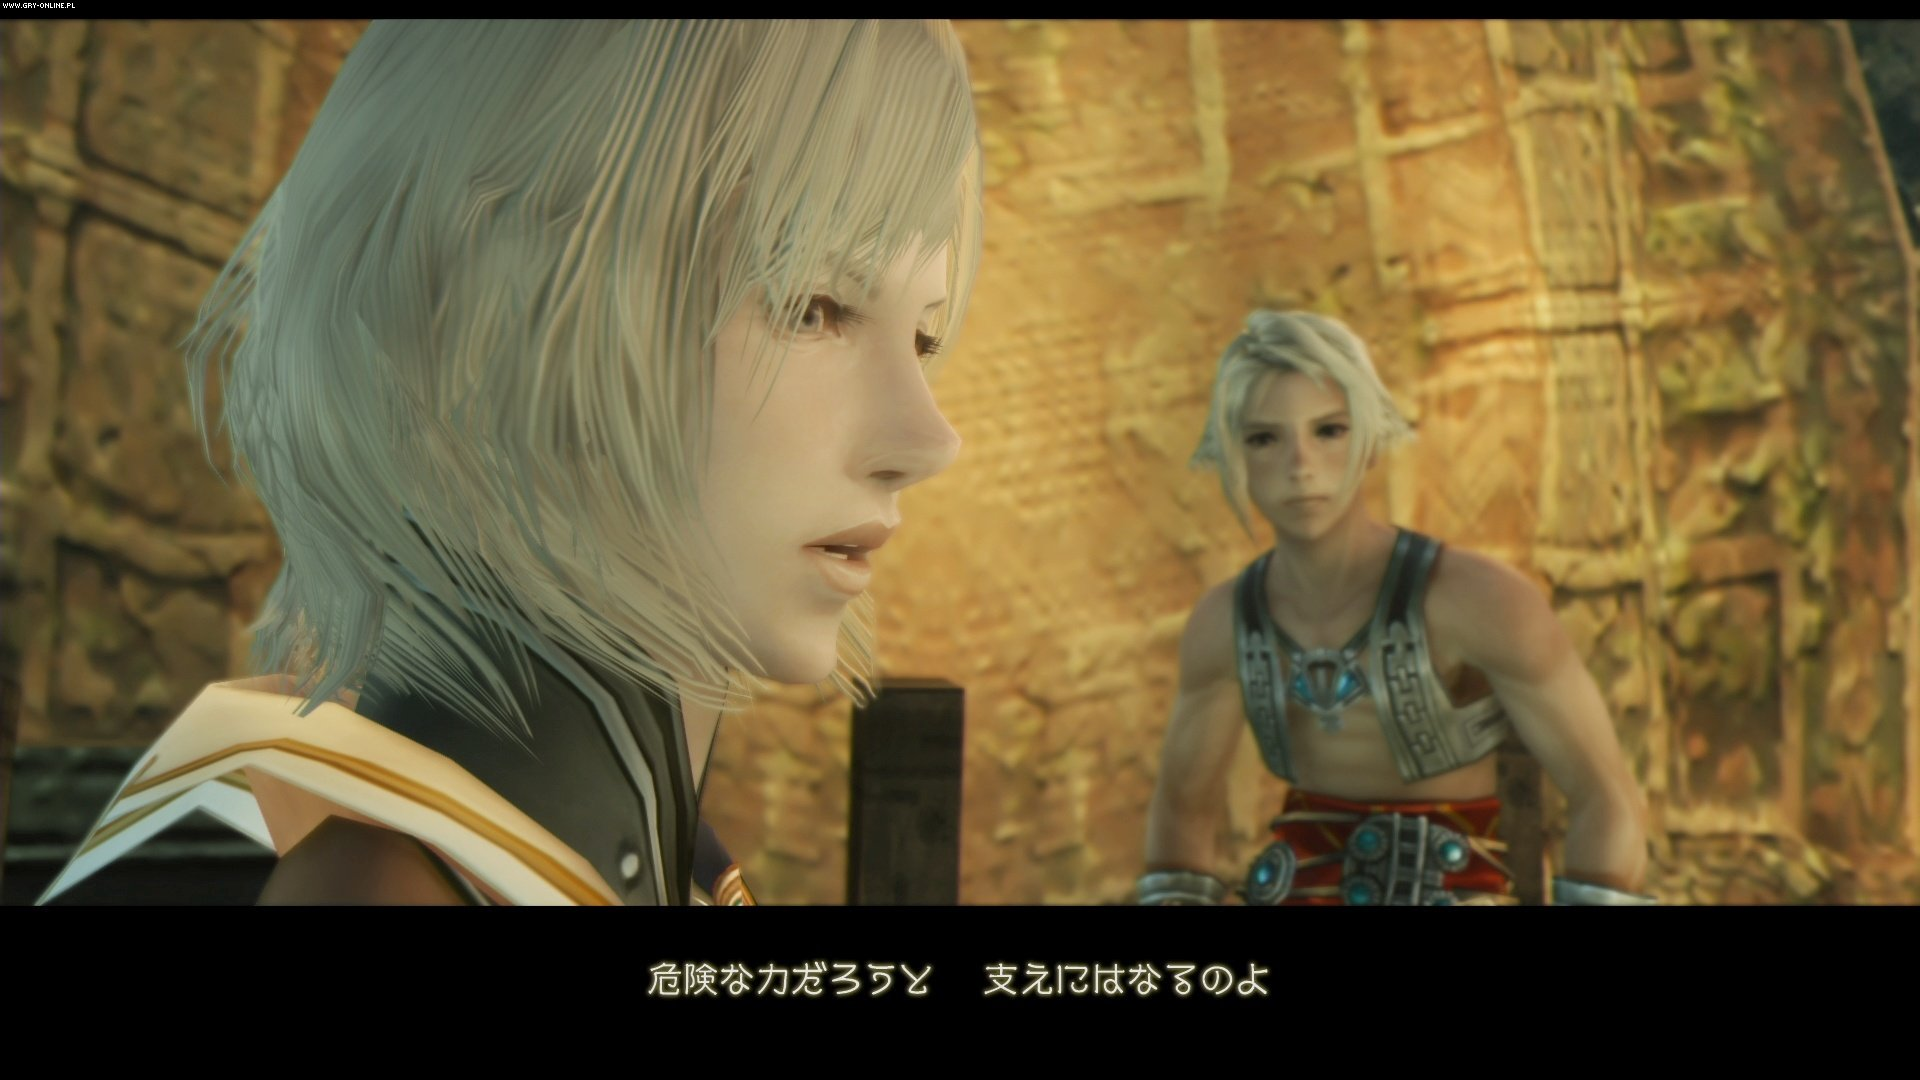 Final Fantasy XII: The Zodiac Age PS4 Games Image 9/62, Square-Enix, Square-Enix / Eidos